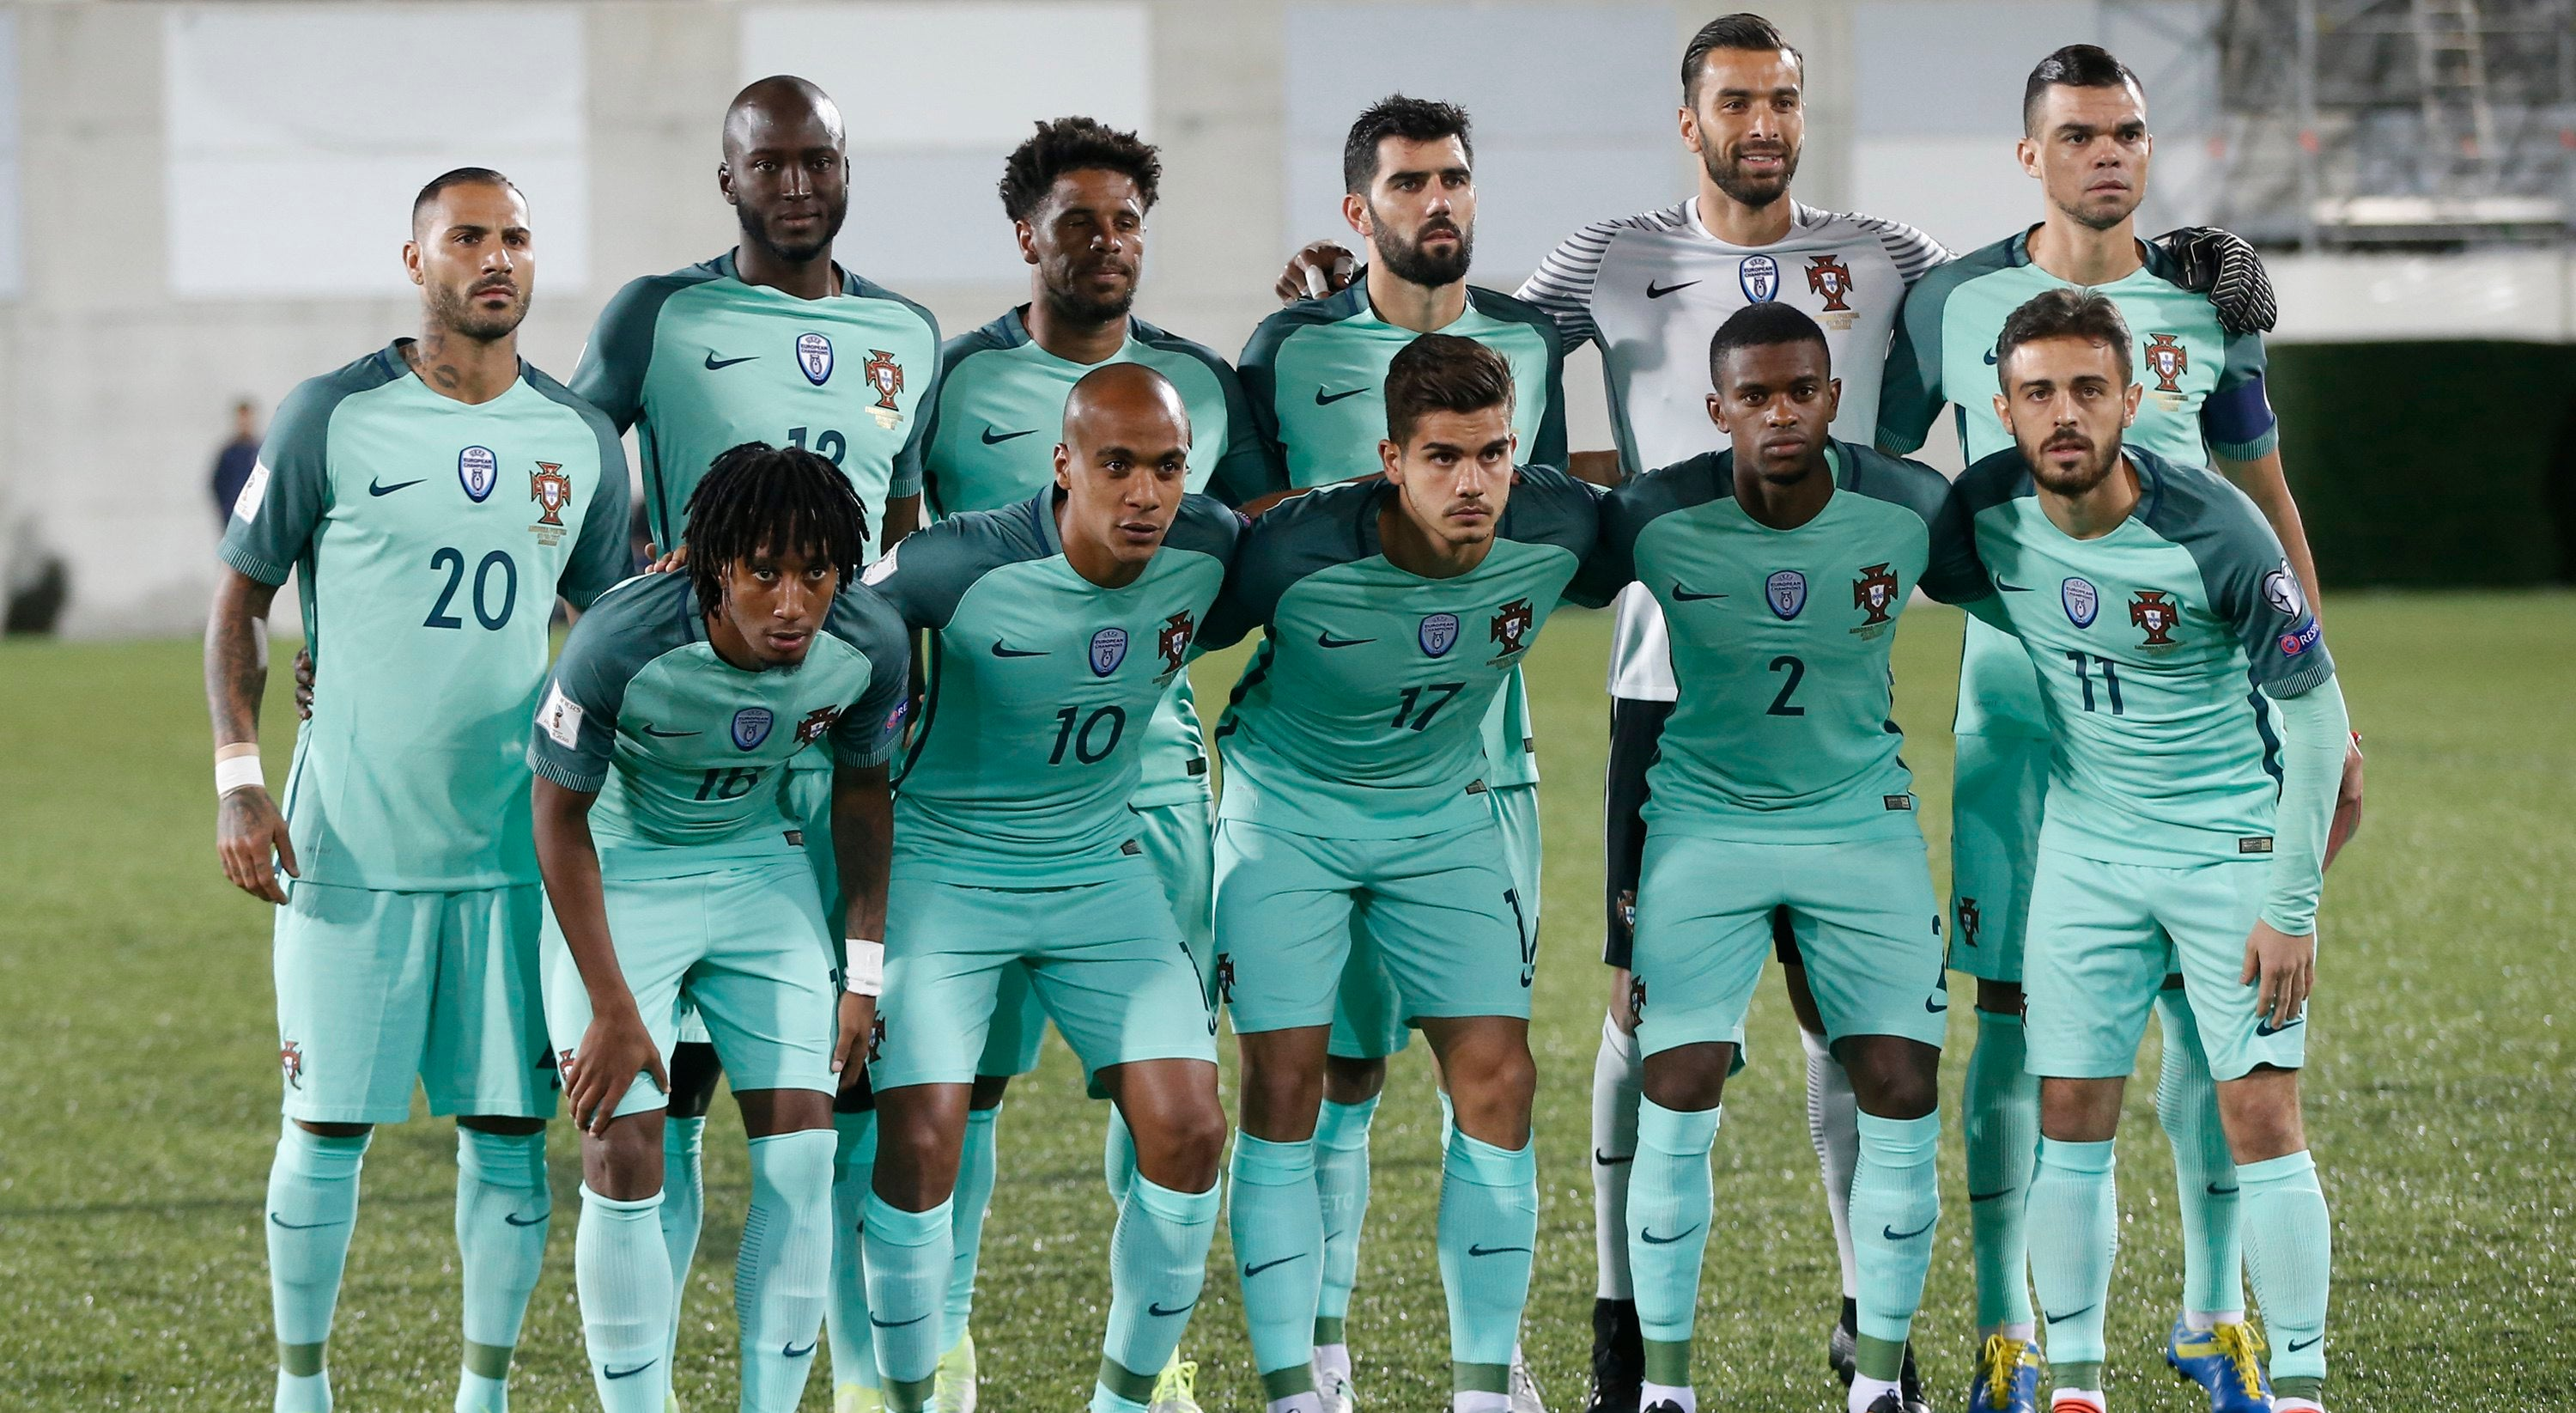 Portugal continua no terceiro lugar do ranking FIFA